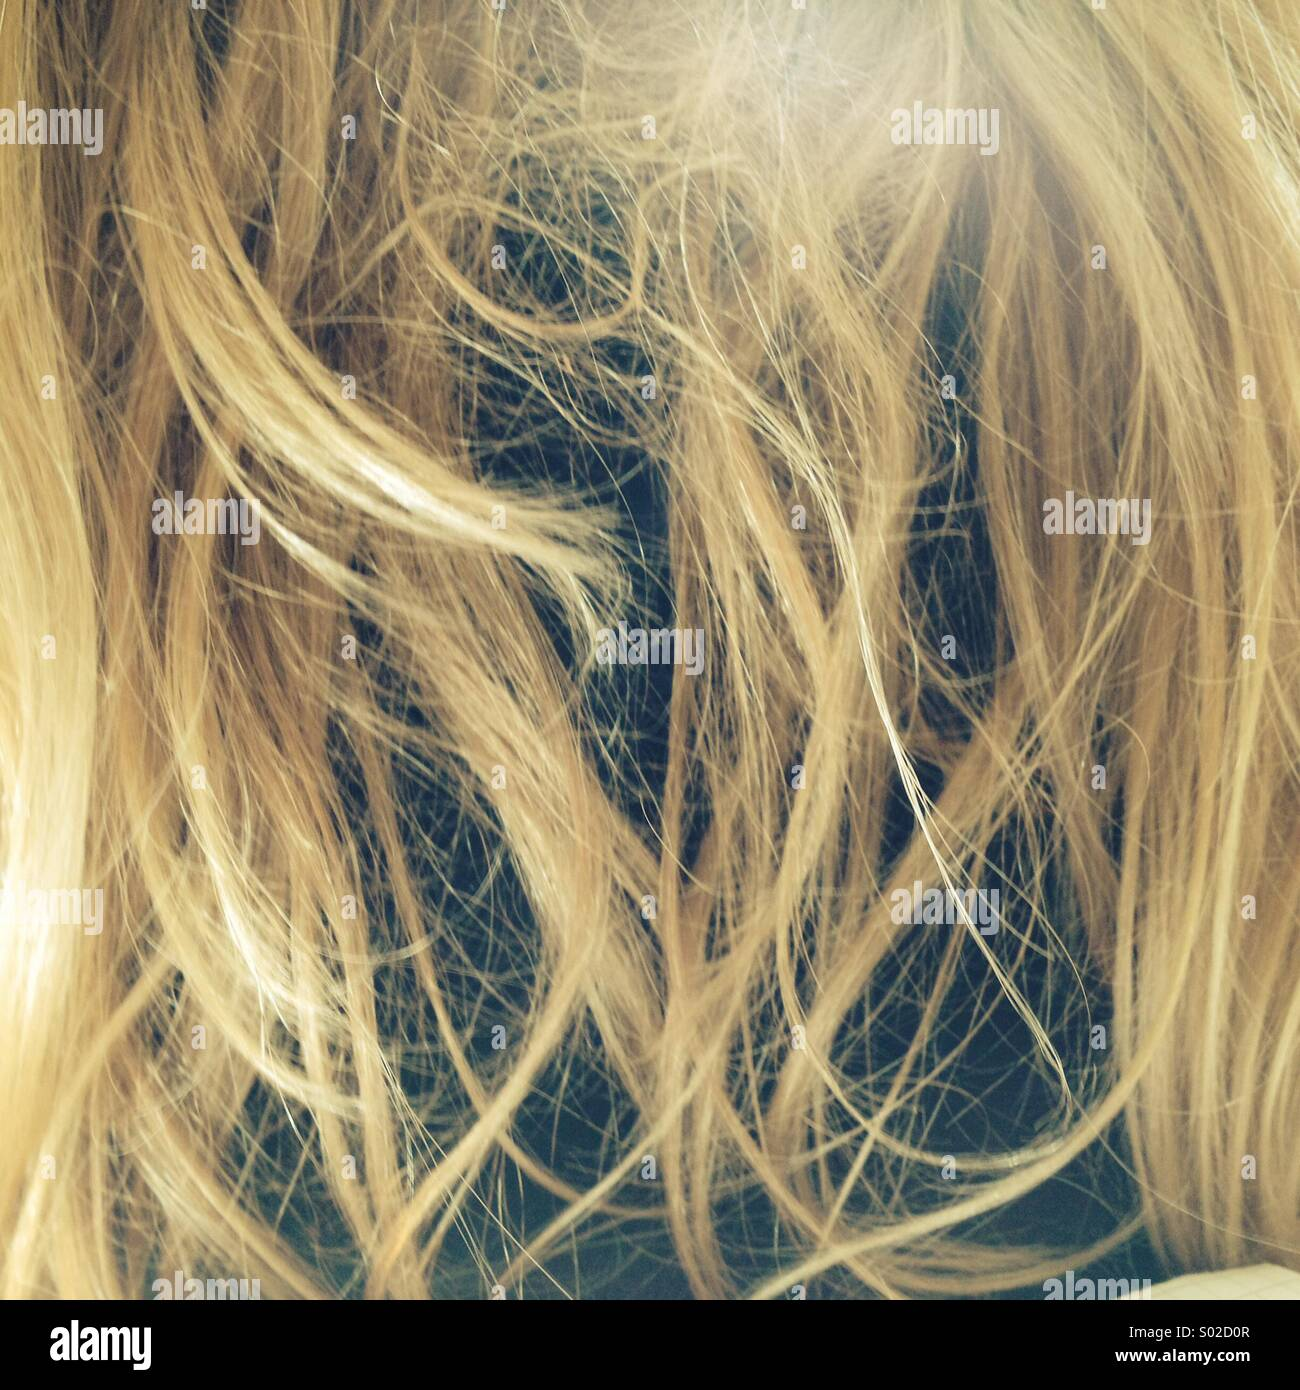 Messy tangled blond hair - Stock Image